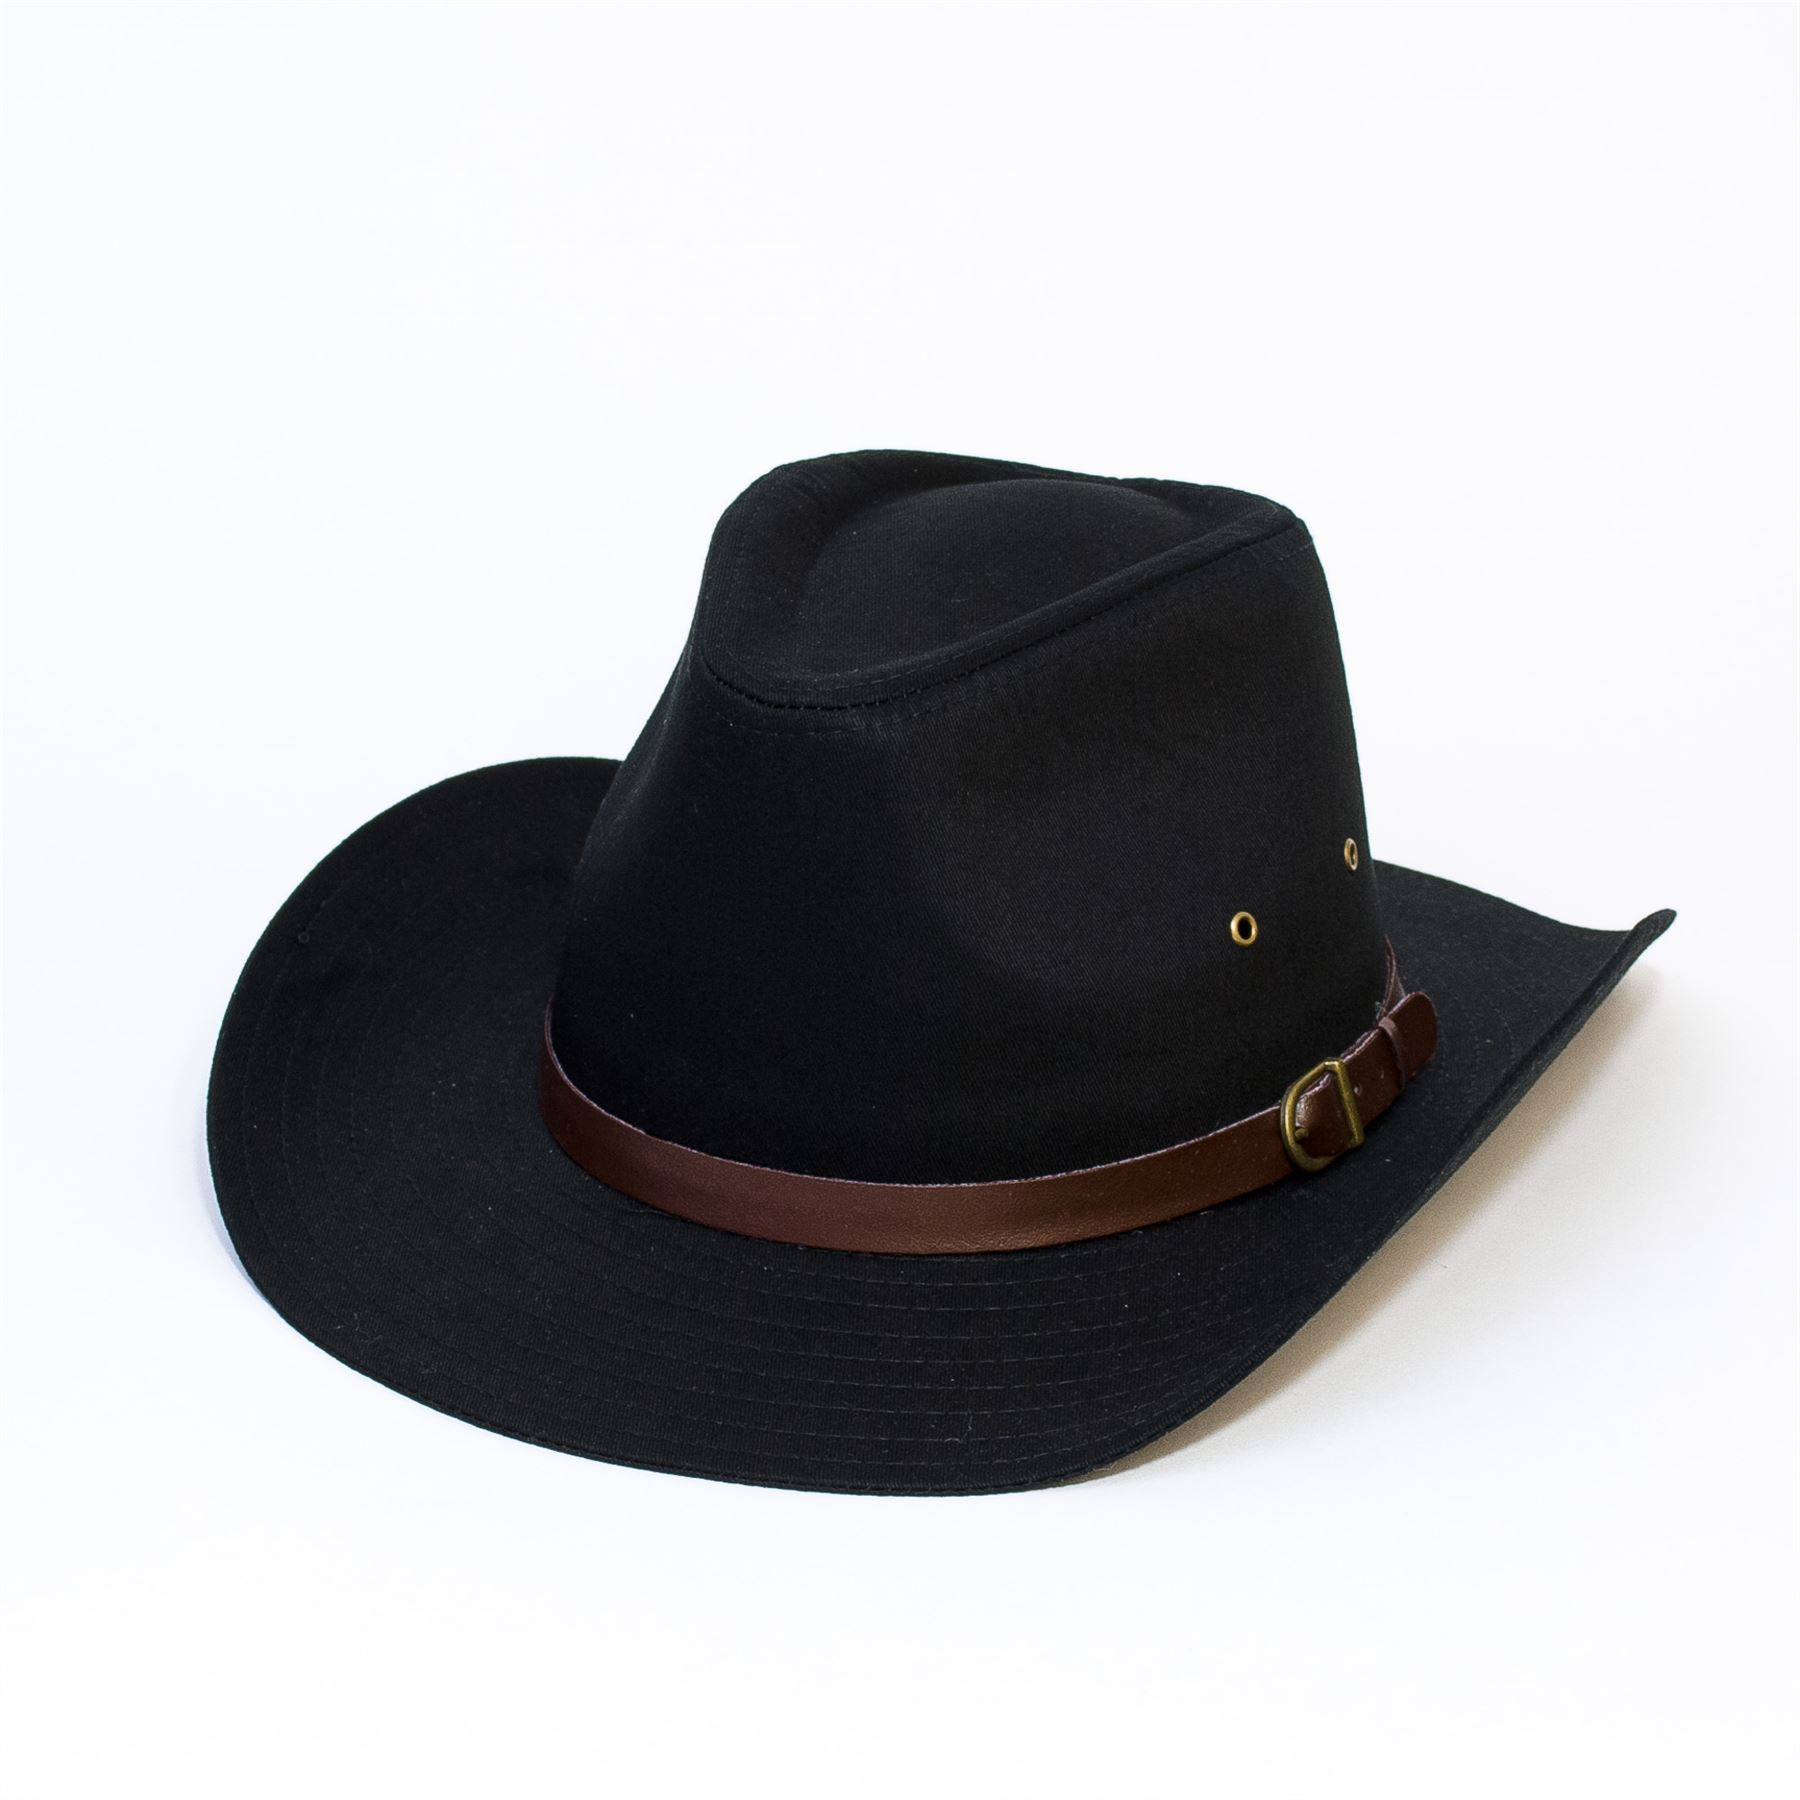 Mens Ladies Fancy Dress Cowboy Western Unisex Cowgirl Hat Cap New